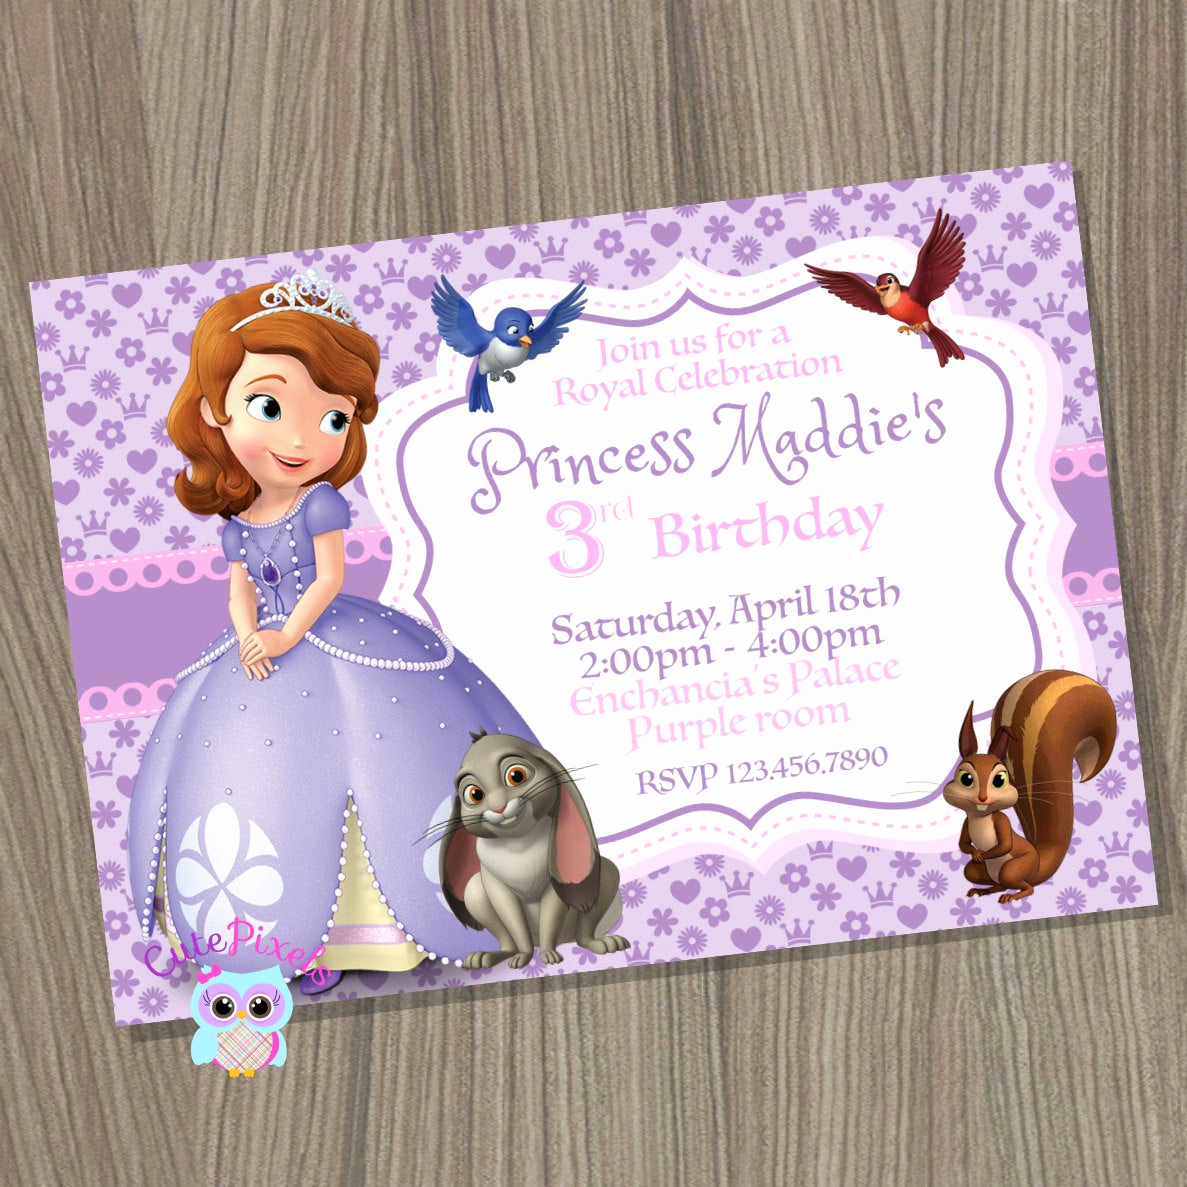 Sofia the First Invitation New sofia the First Invitation Princess sofia Invitation